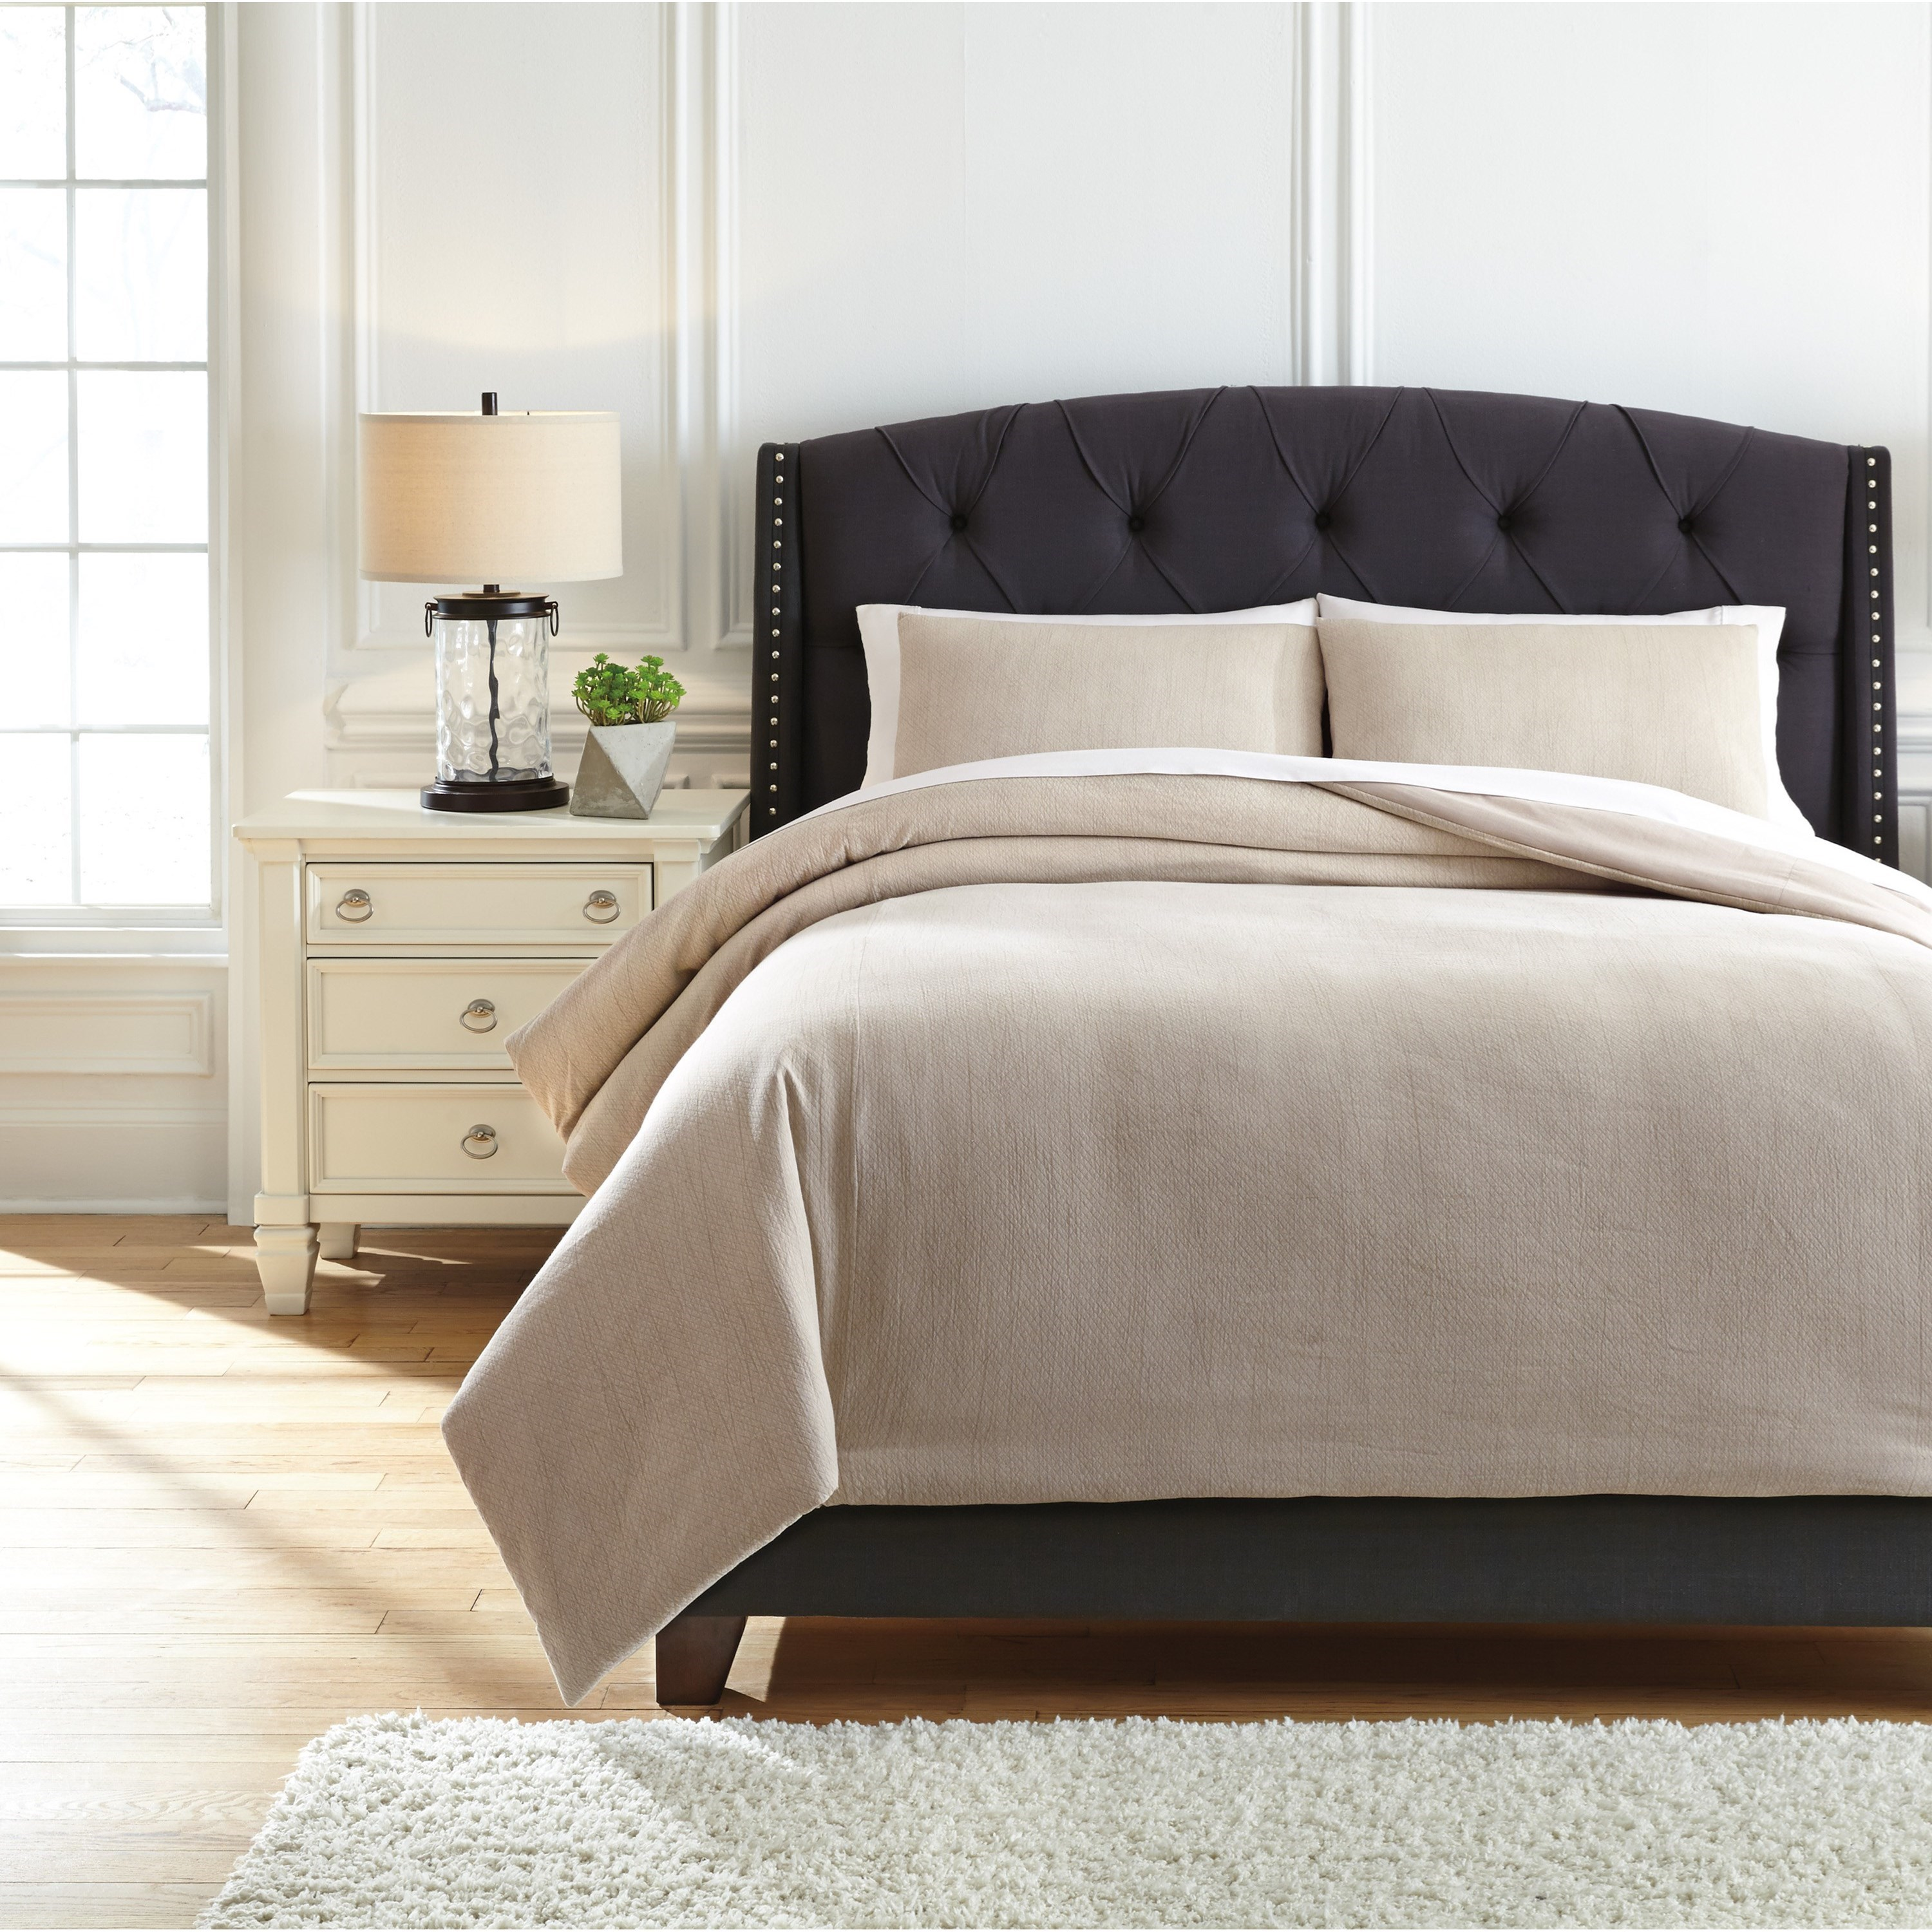 Bedding Sets King Mayda Beige Comforter Set by Signature Design by Ashley at Zak's Warehouse Clearance Center